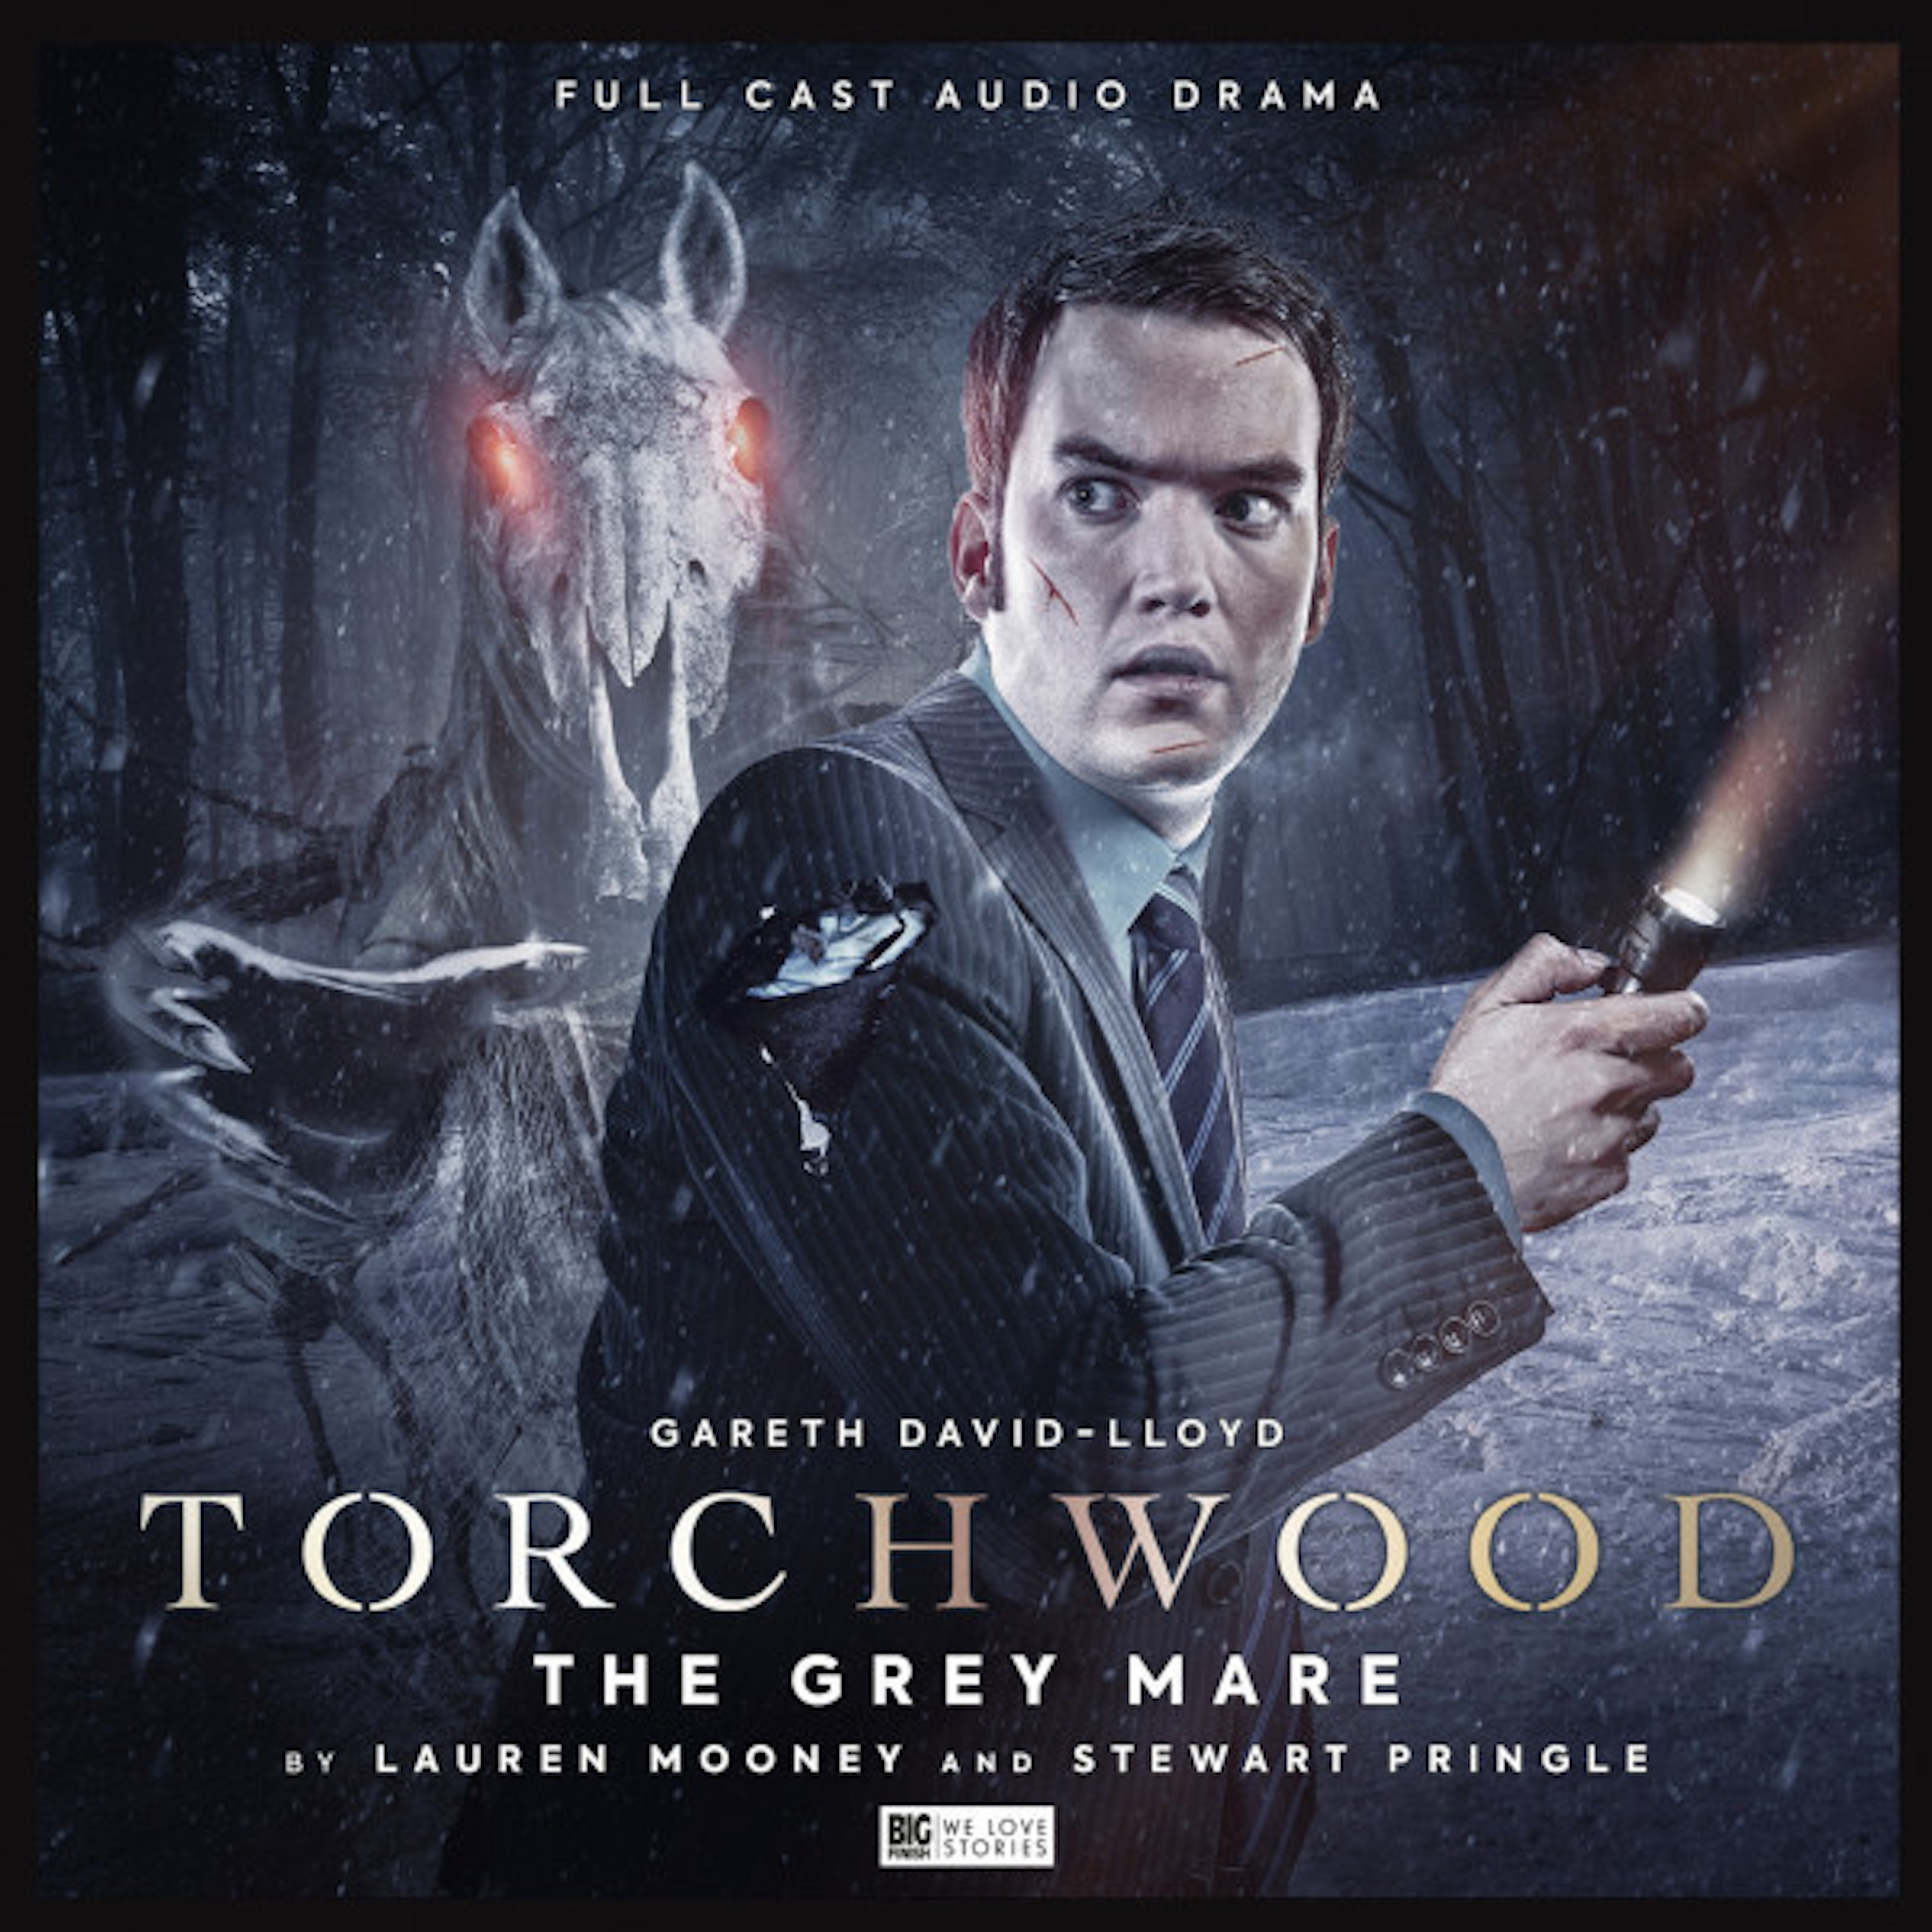 Torchwood: The Gray Mare